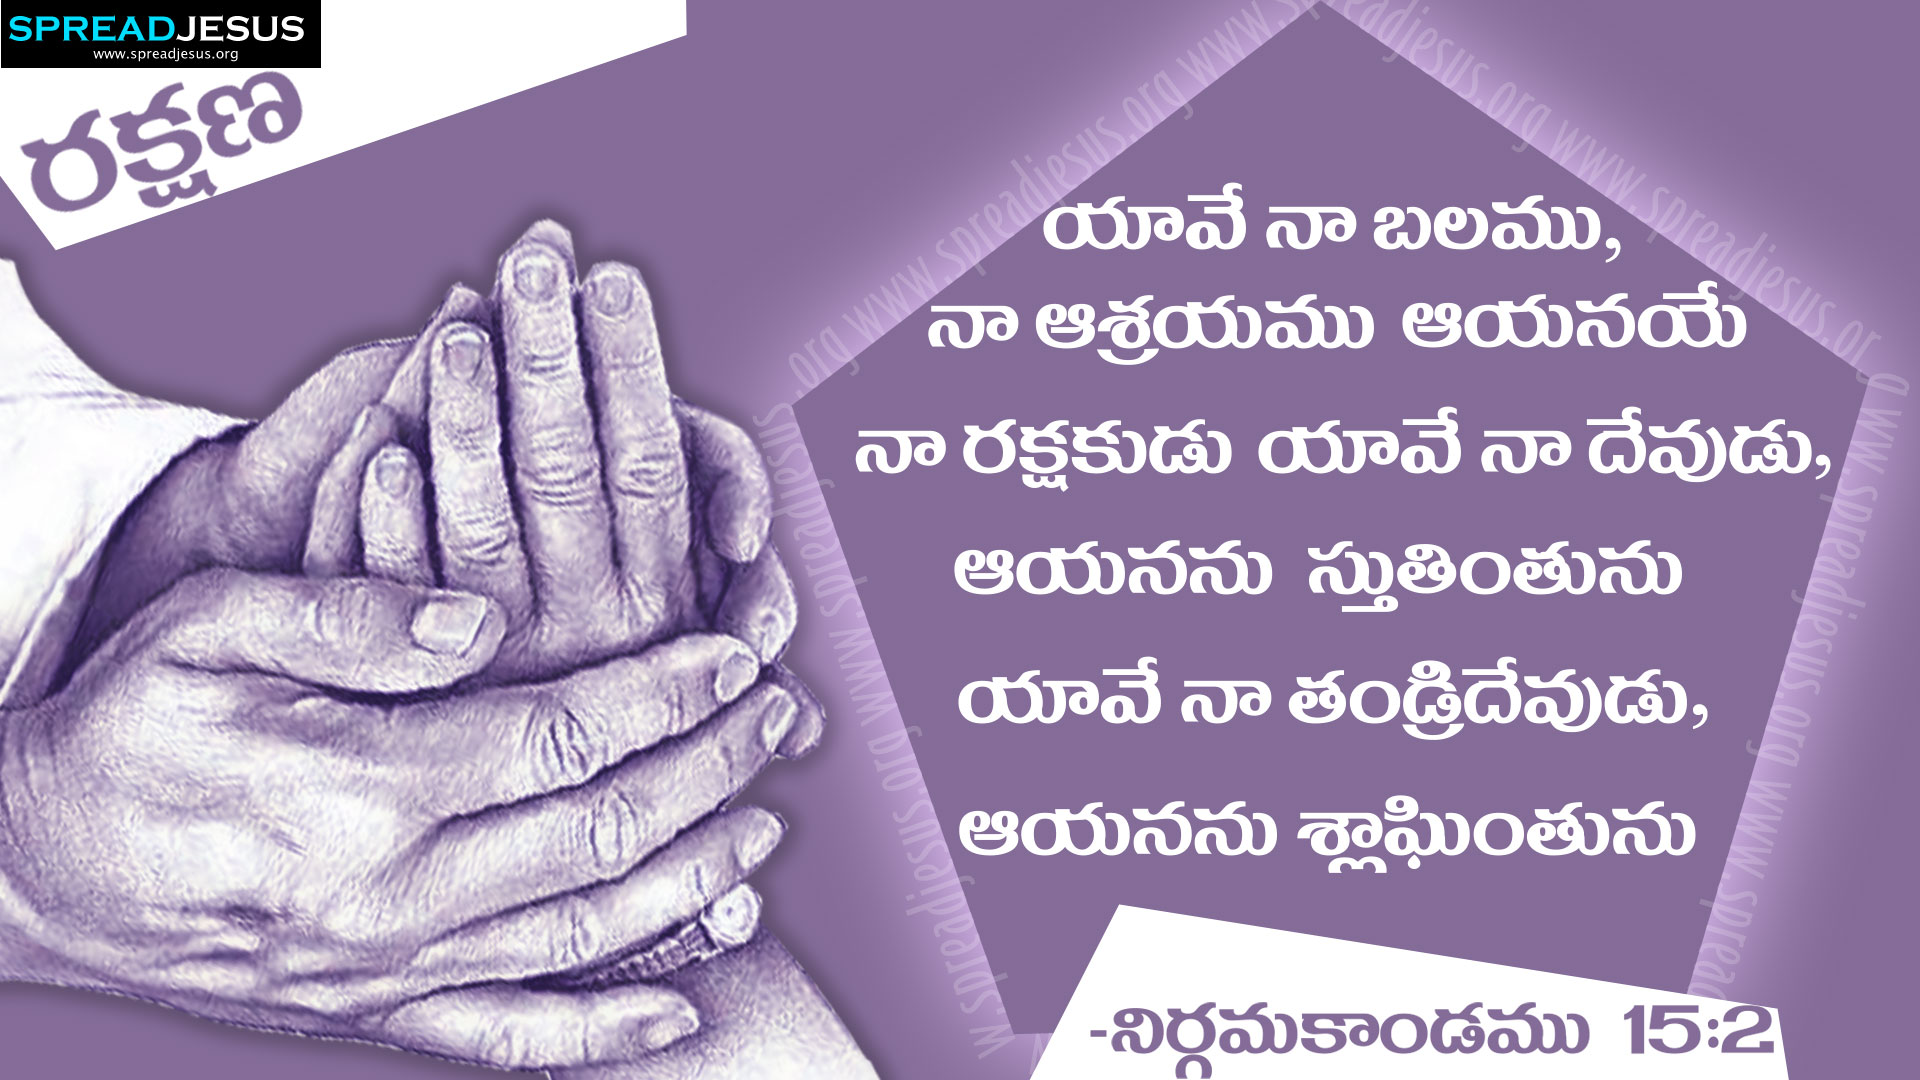 TELUGU BIBLE QUOTES HD-WALLPAPERS NIRGAMAKANDAMU 15:2 FREE DOWNLOAD NIRGAMAKANDAMU 15:2 TELUGU BIBLE QUOTES HD-WALLPAPERS FREE DOWNLOAD BIBLE QUOTES TELUGU HD-WALLPAPERS NIRGAMAKANDAMU 15:2 TELUGU HD-WALLPAPERS FREE DOWNLOAD